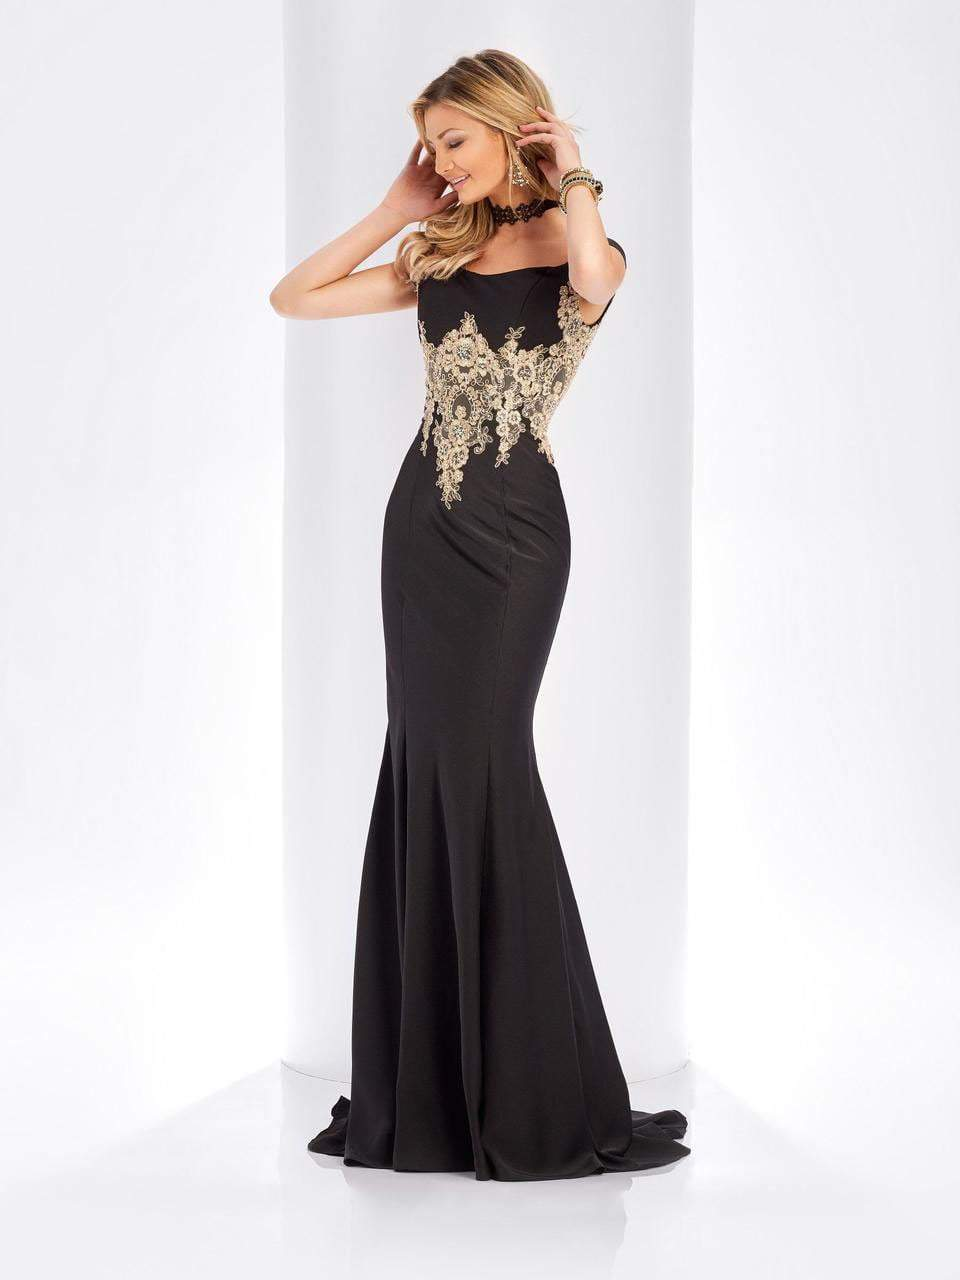 Clarisse - 3452 Gold Lace Applique Evening Gown in Black